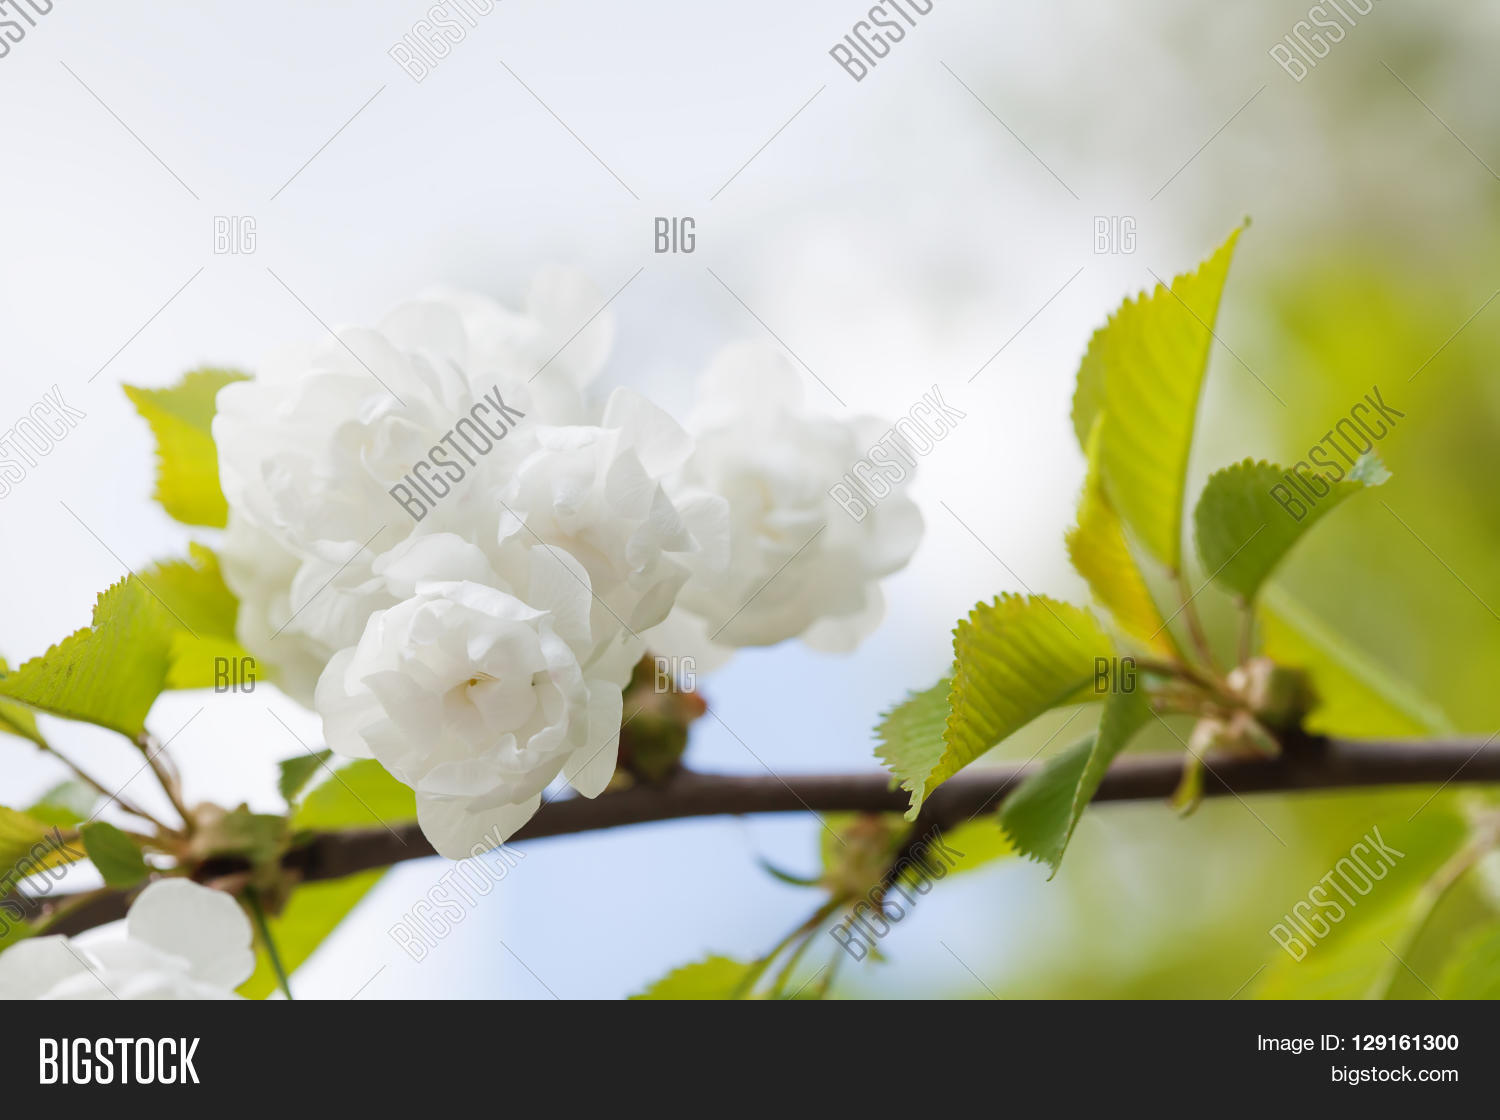 Blooming chinese apple image photo free trial bigstock blooming chinese apple branch with white flowers and green leaves crabapple tree malus prunifolia mightylinksfo